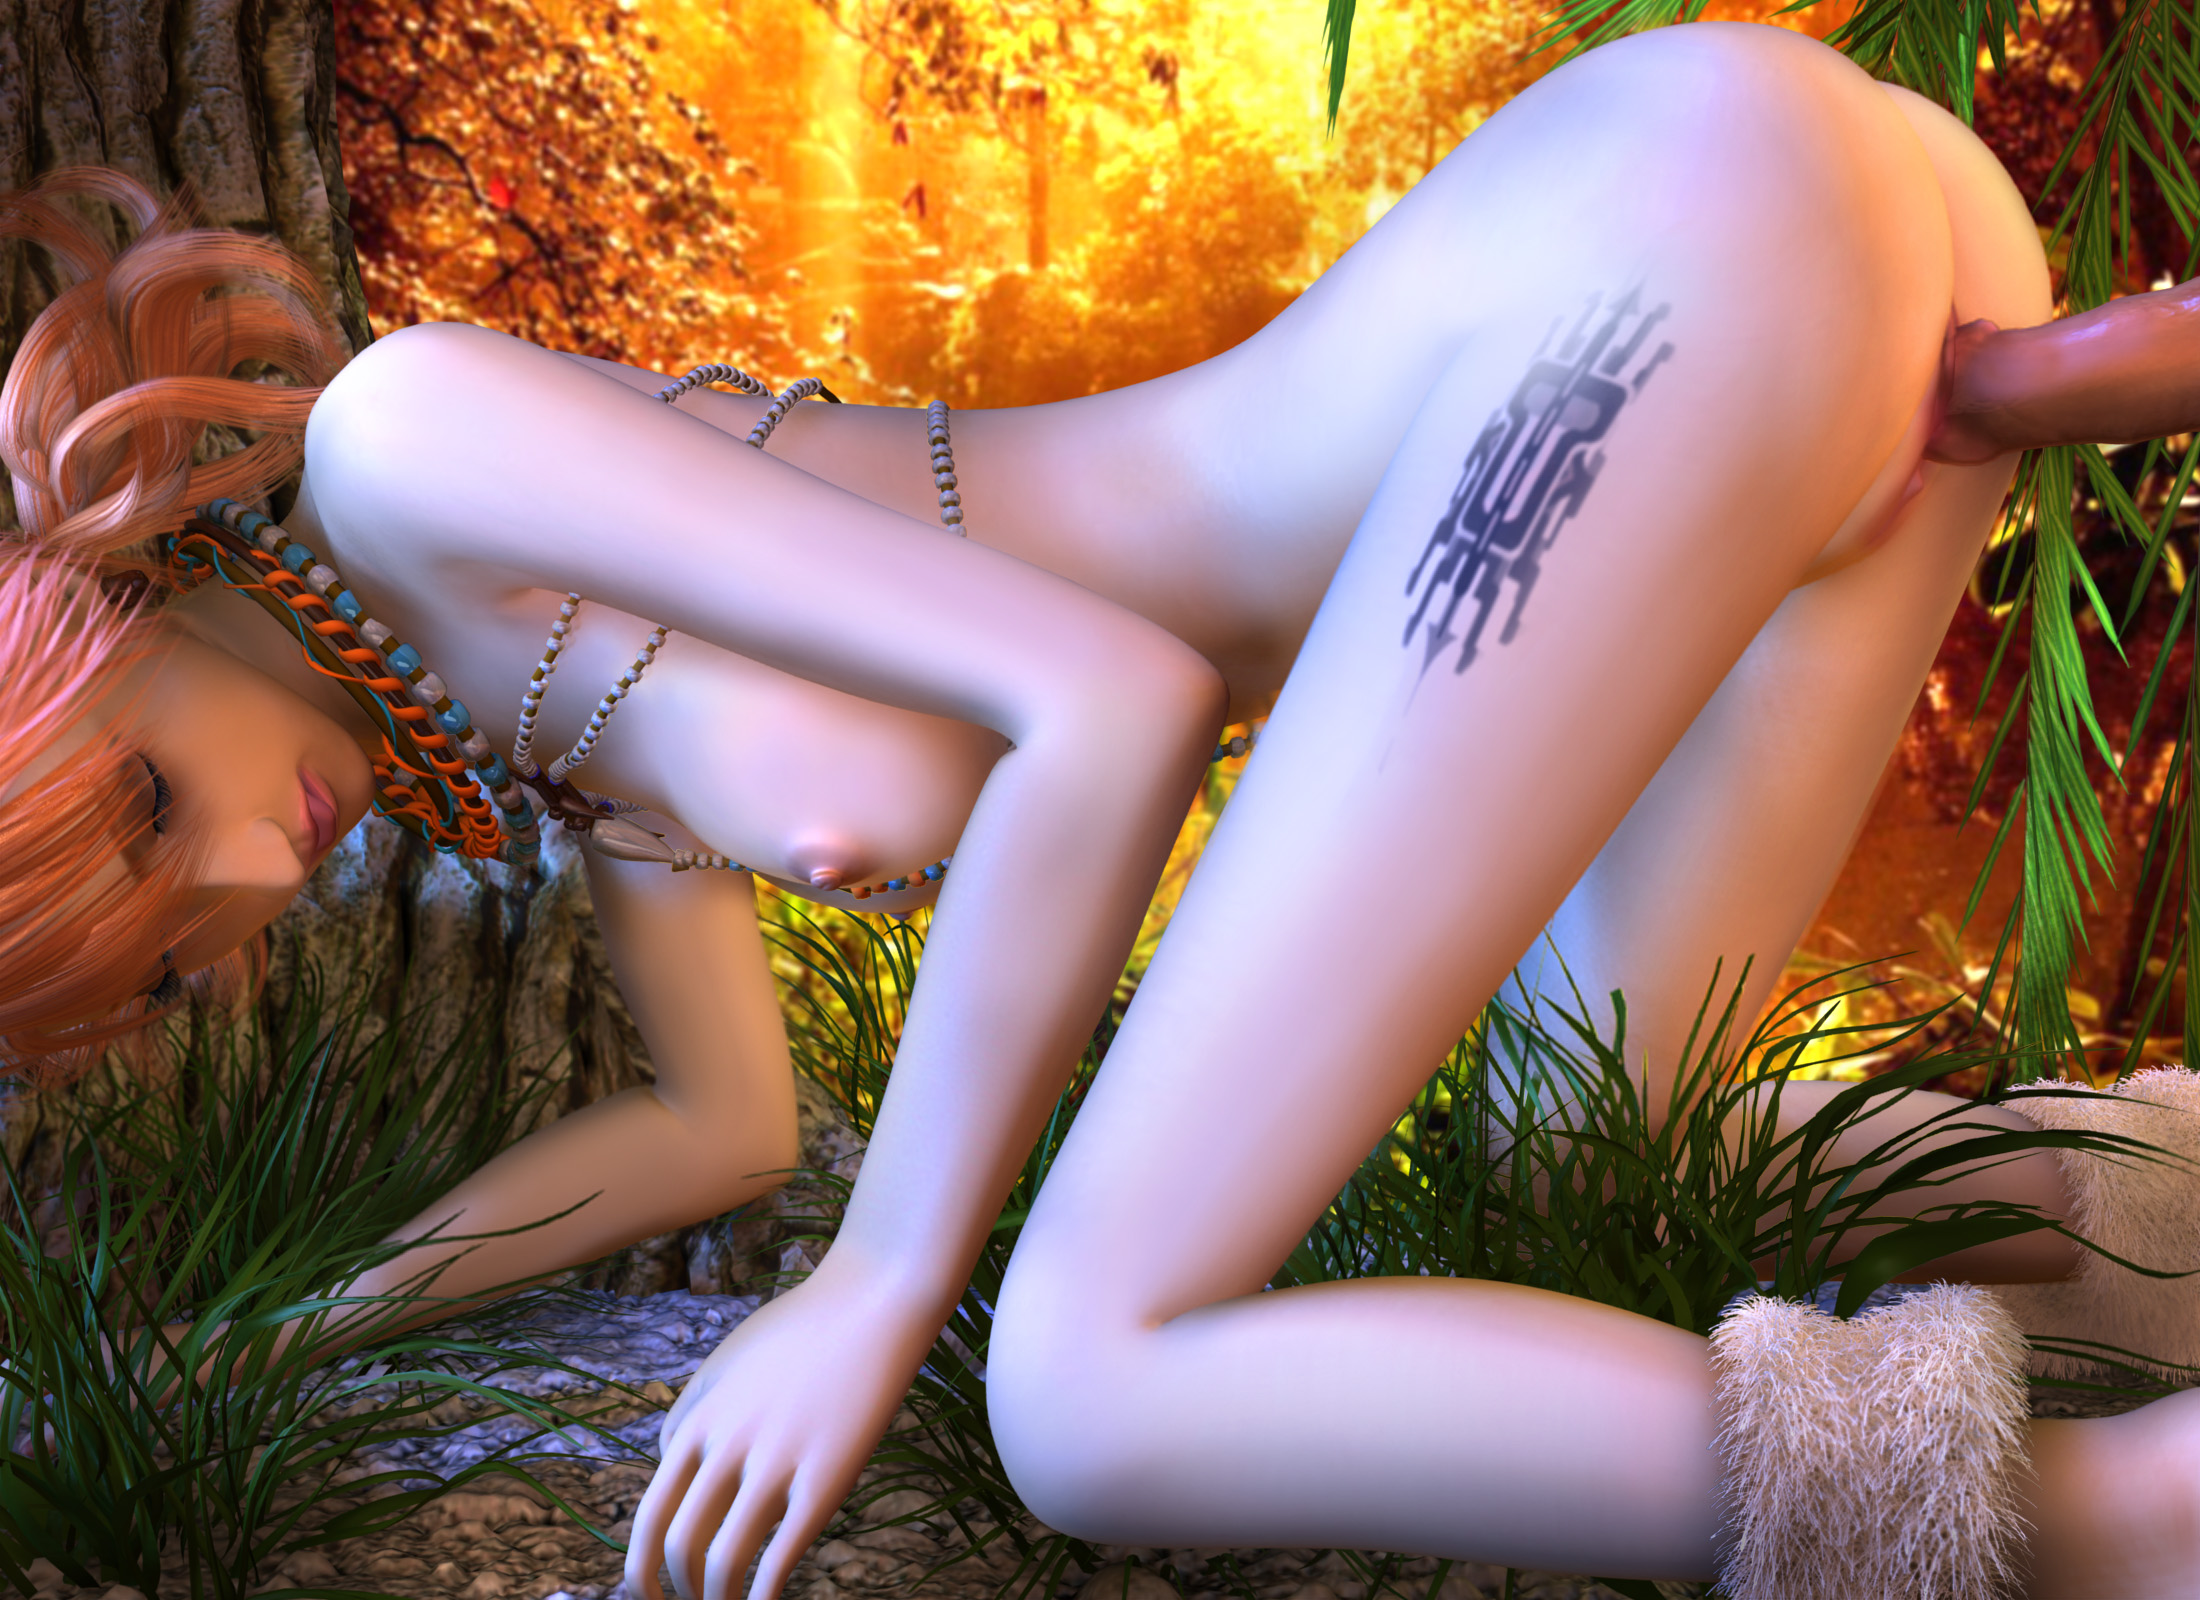 Animated 3d erotic fantasy nude porn picture